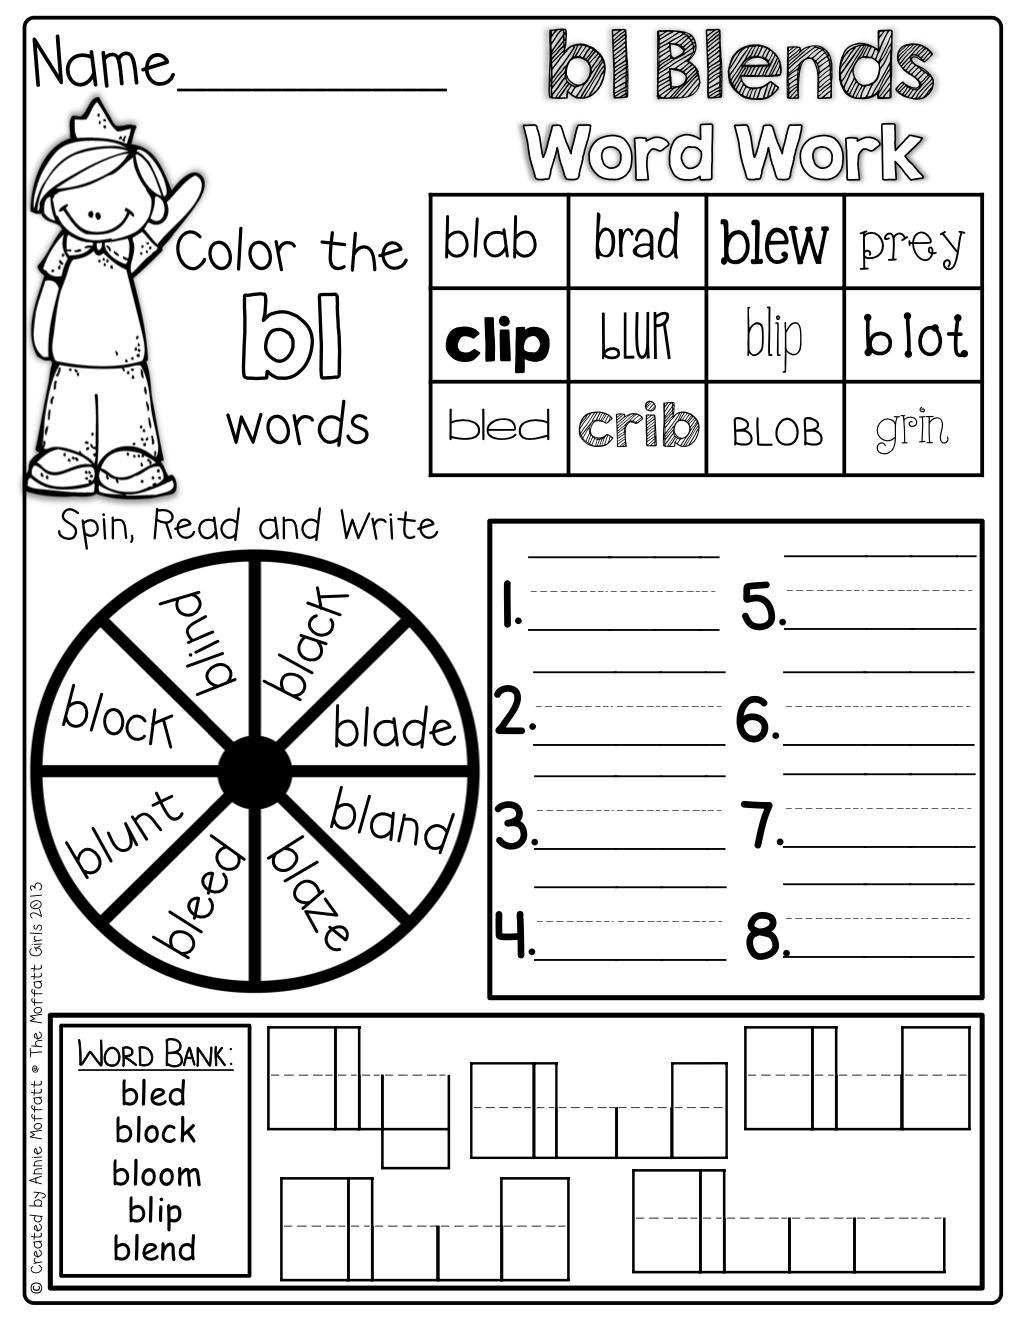 Beginning Blends Word Work So Many Activities On One Page